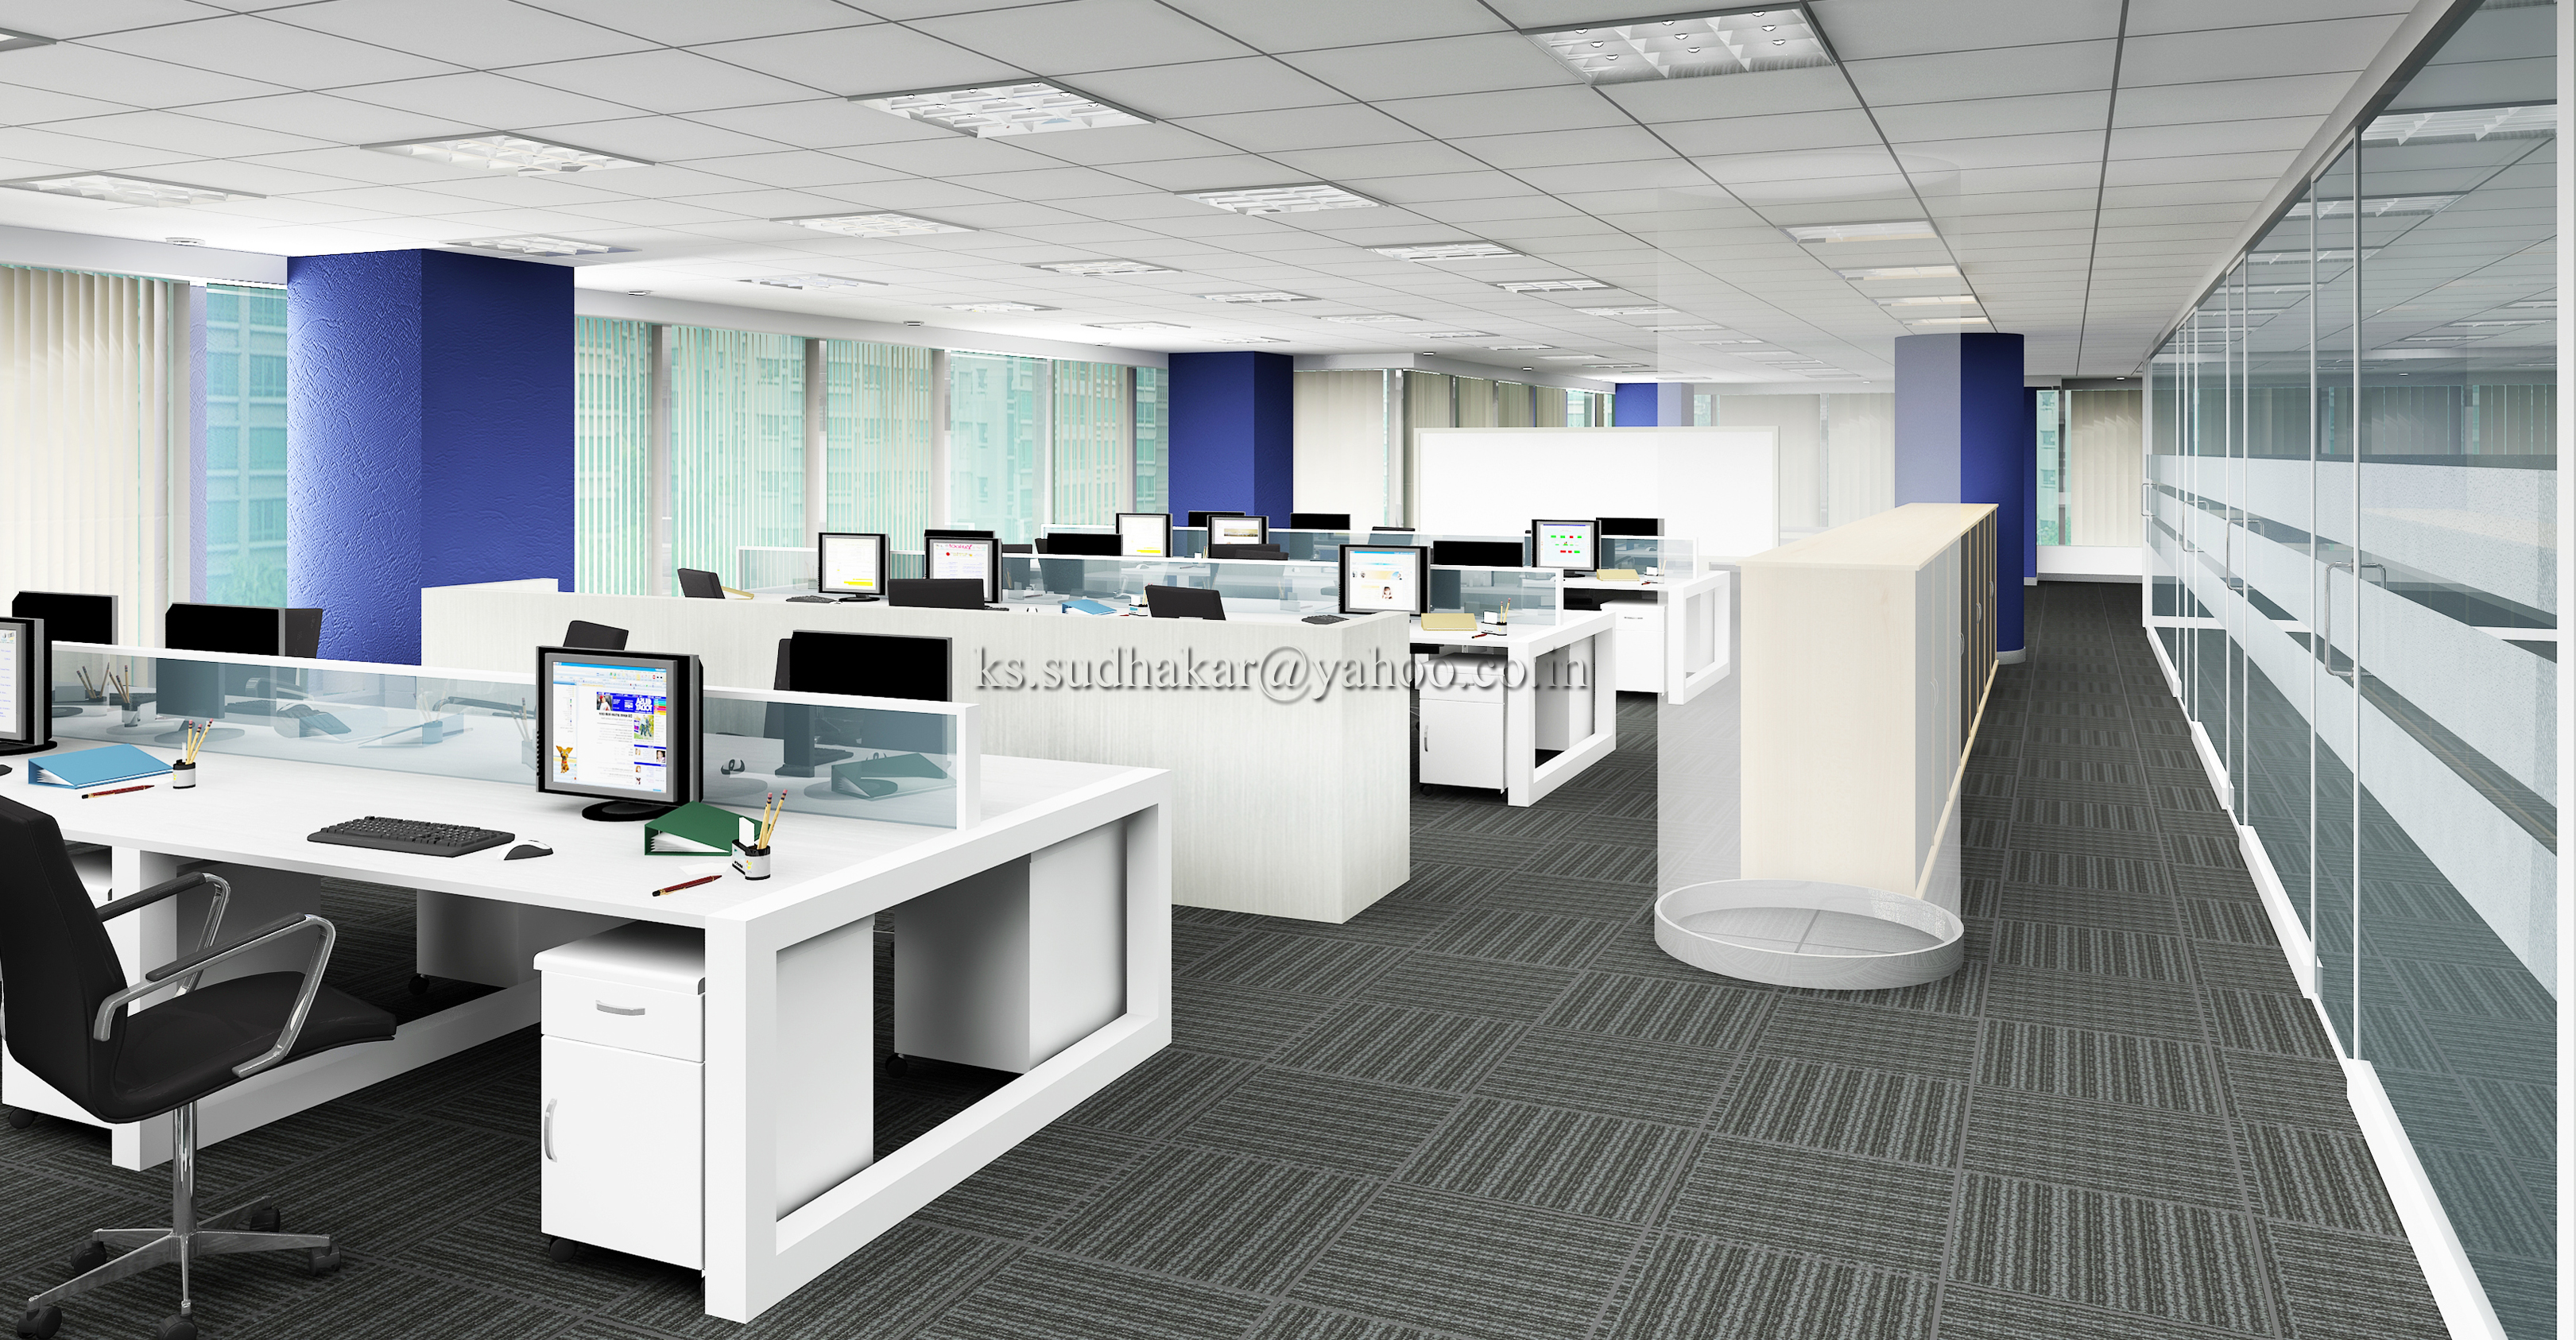 Interior renderings by sudhakar k s at for Office images